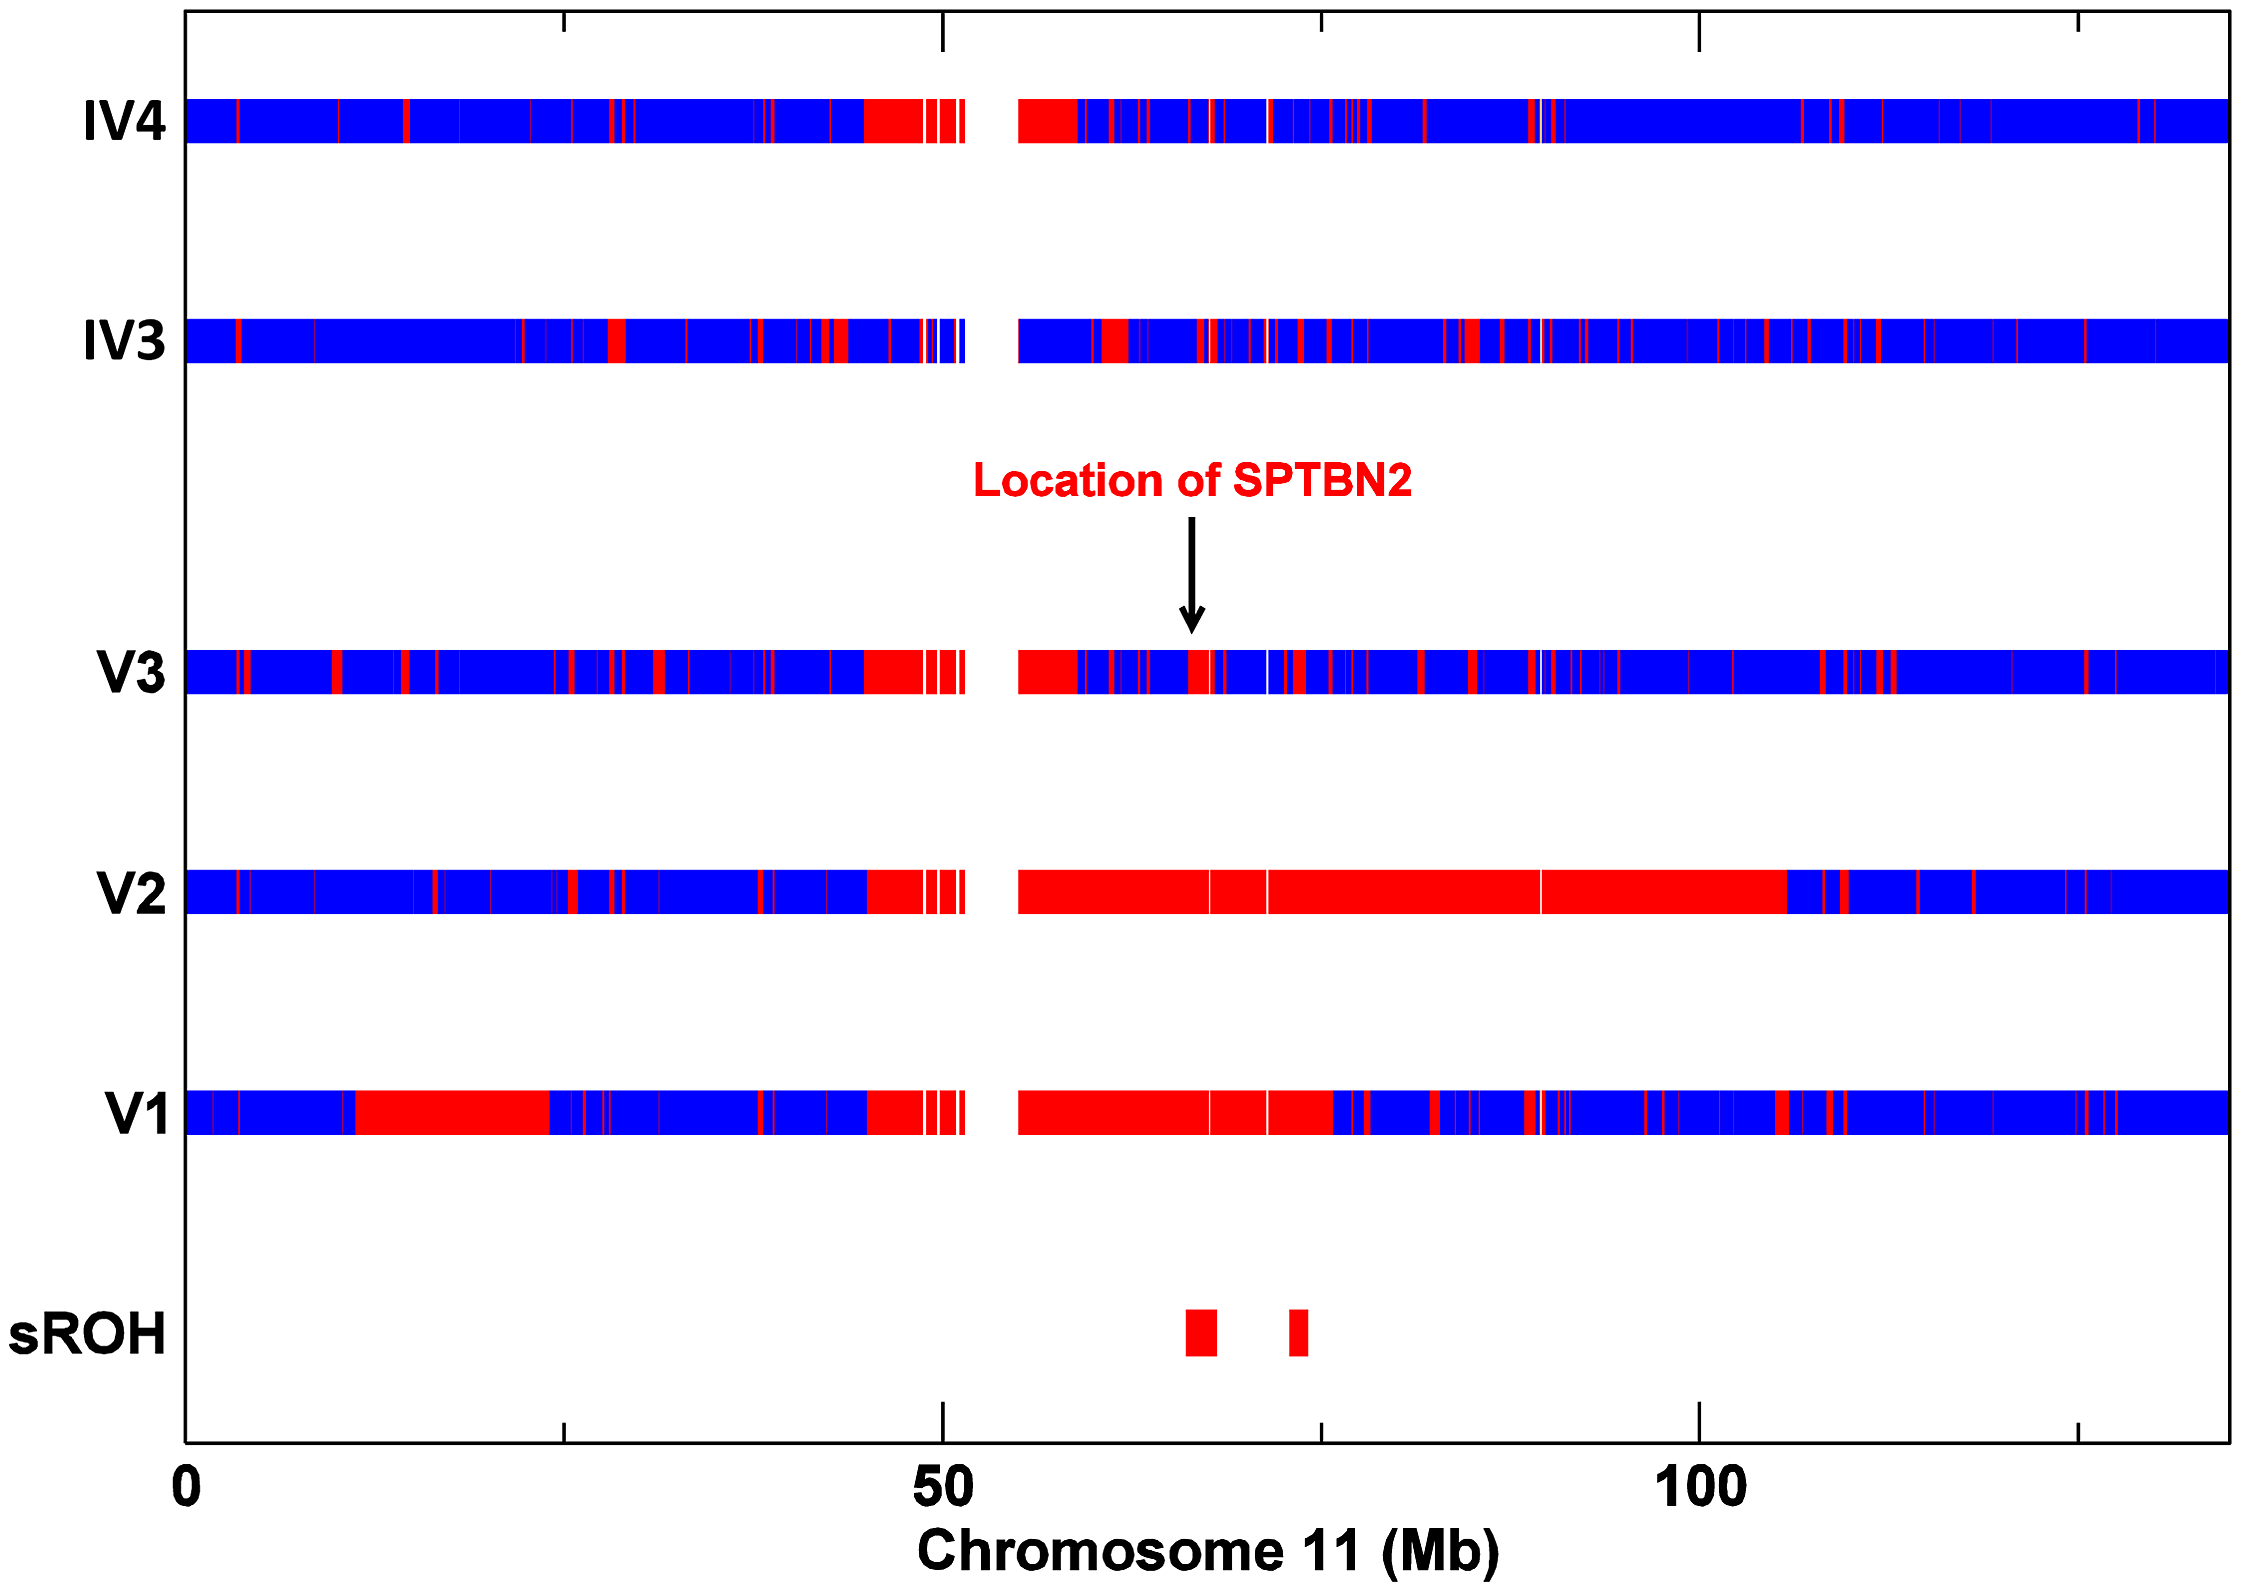 SNP Zygosity data for chromosome 11 from affecteds V1, V2, V3, and V3's parents IV3 and IV4.